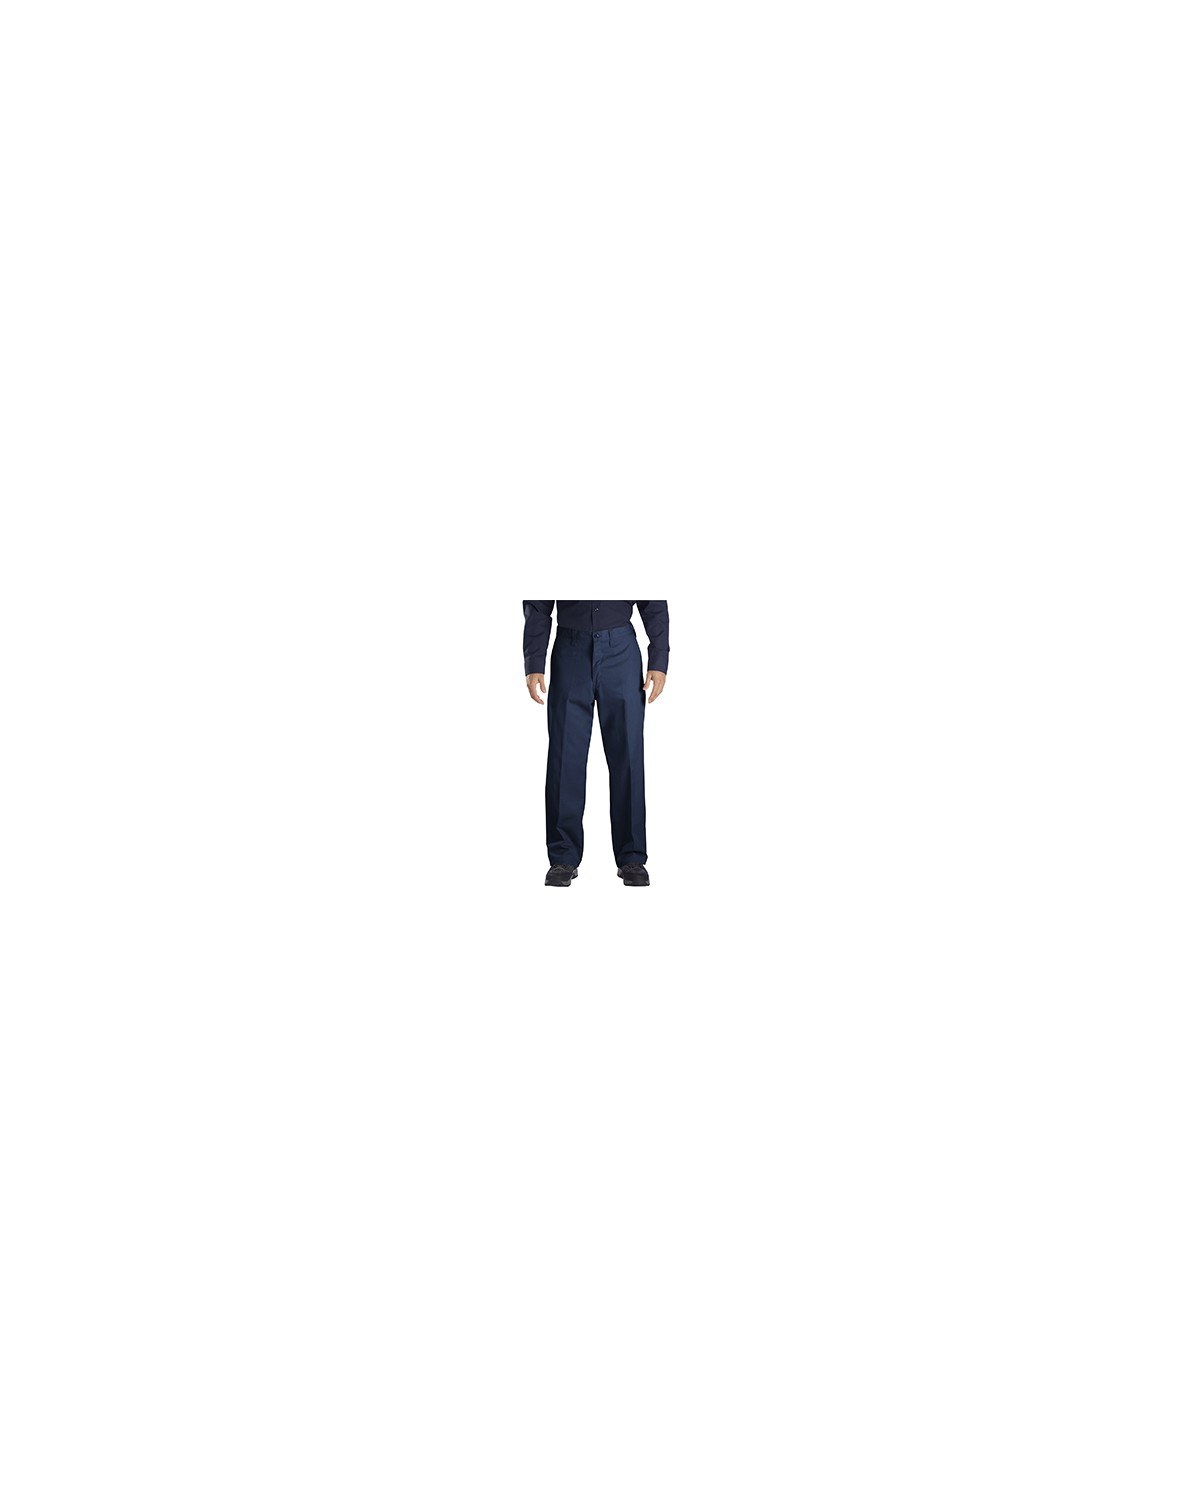 LP812 Dickies DARK NAVY 30